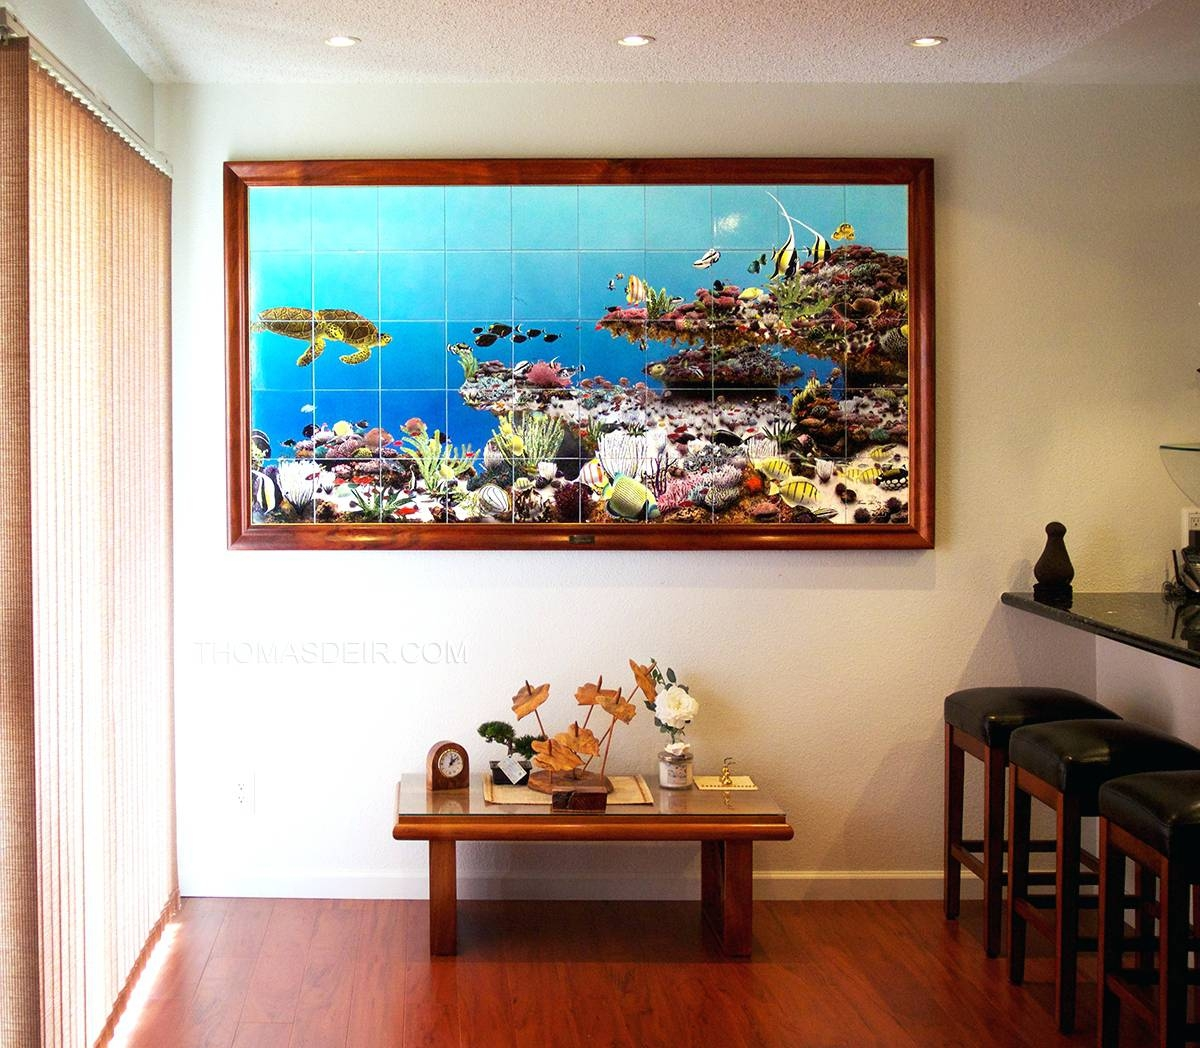 Wall Arts ~ Remarkable Wall Art For Bedroom Inspirations Hawaii With Regard To Recent Hawaiian Metal Wall Art (View 16 of 20)